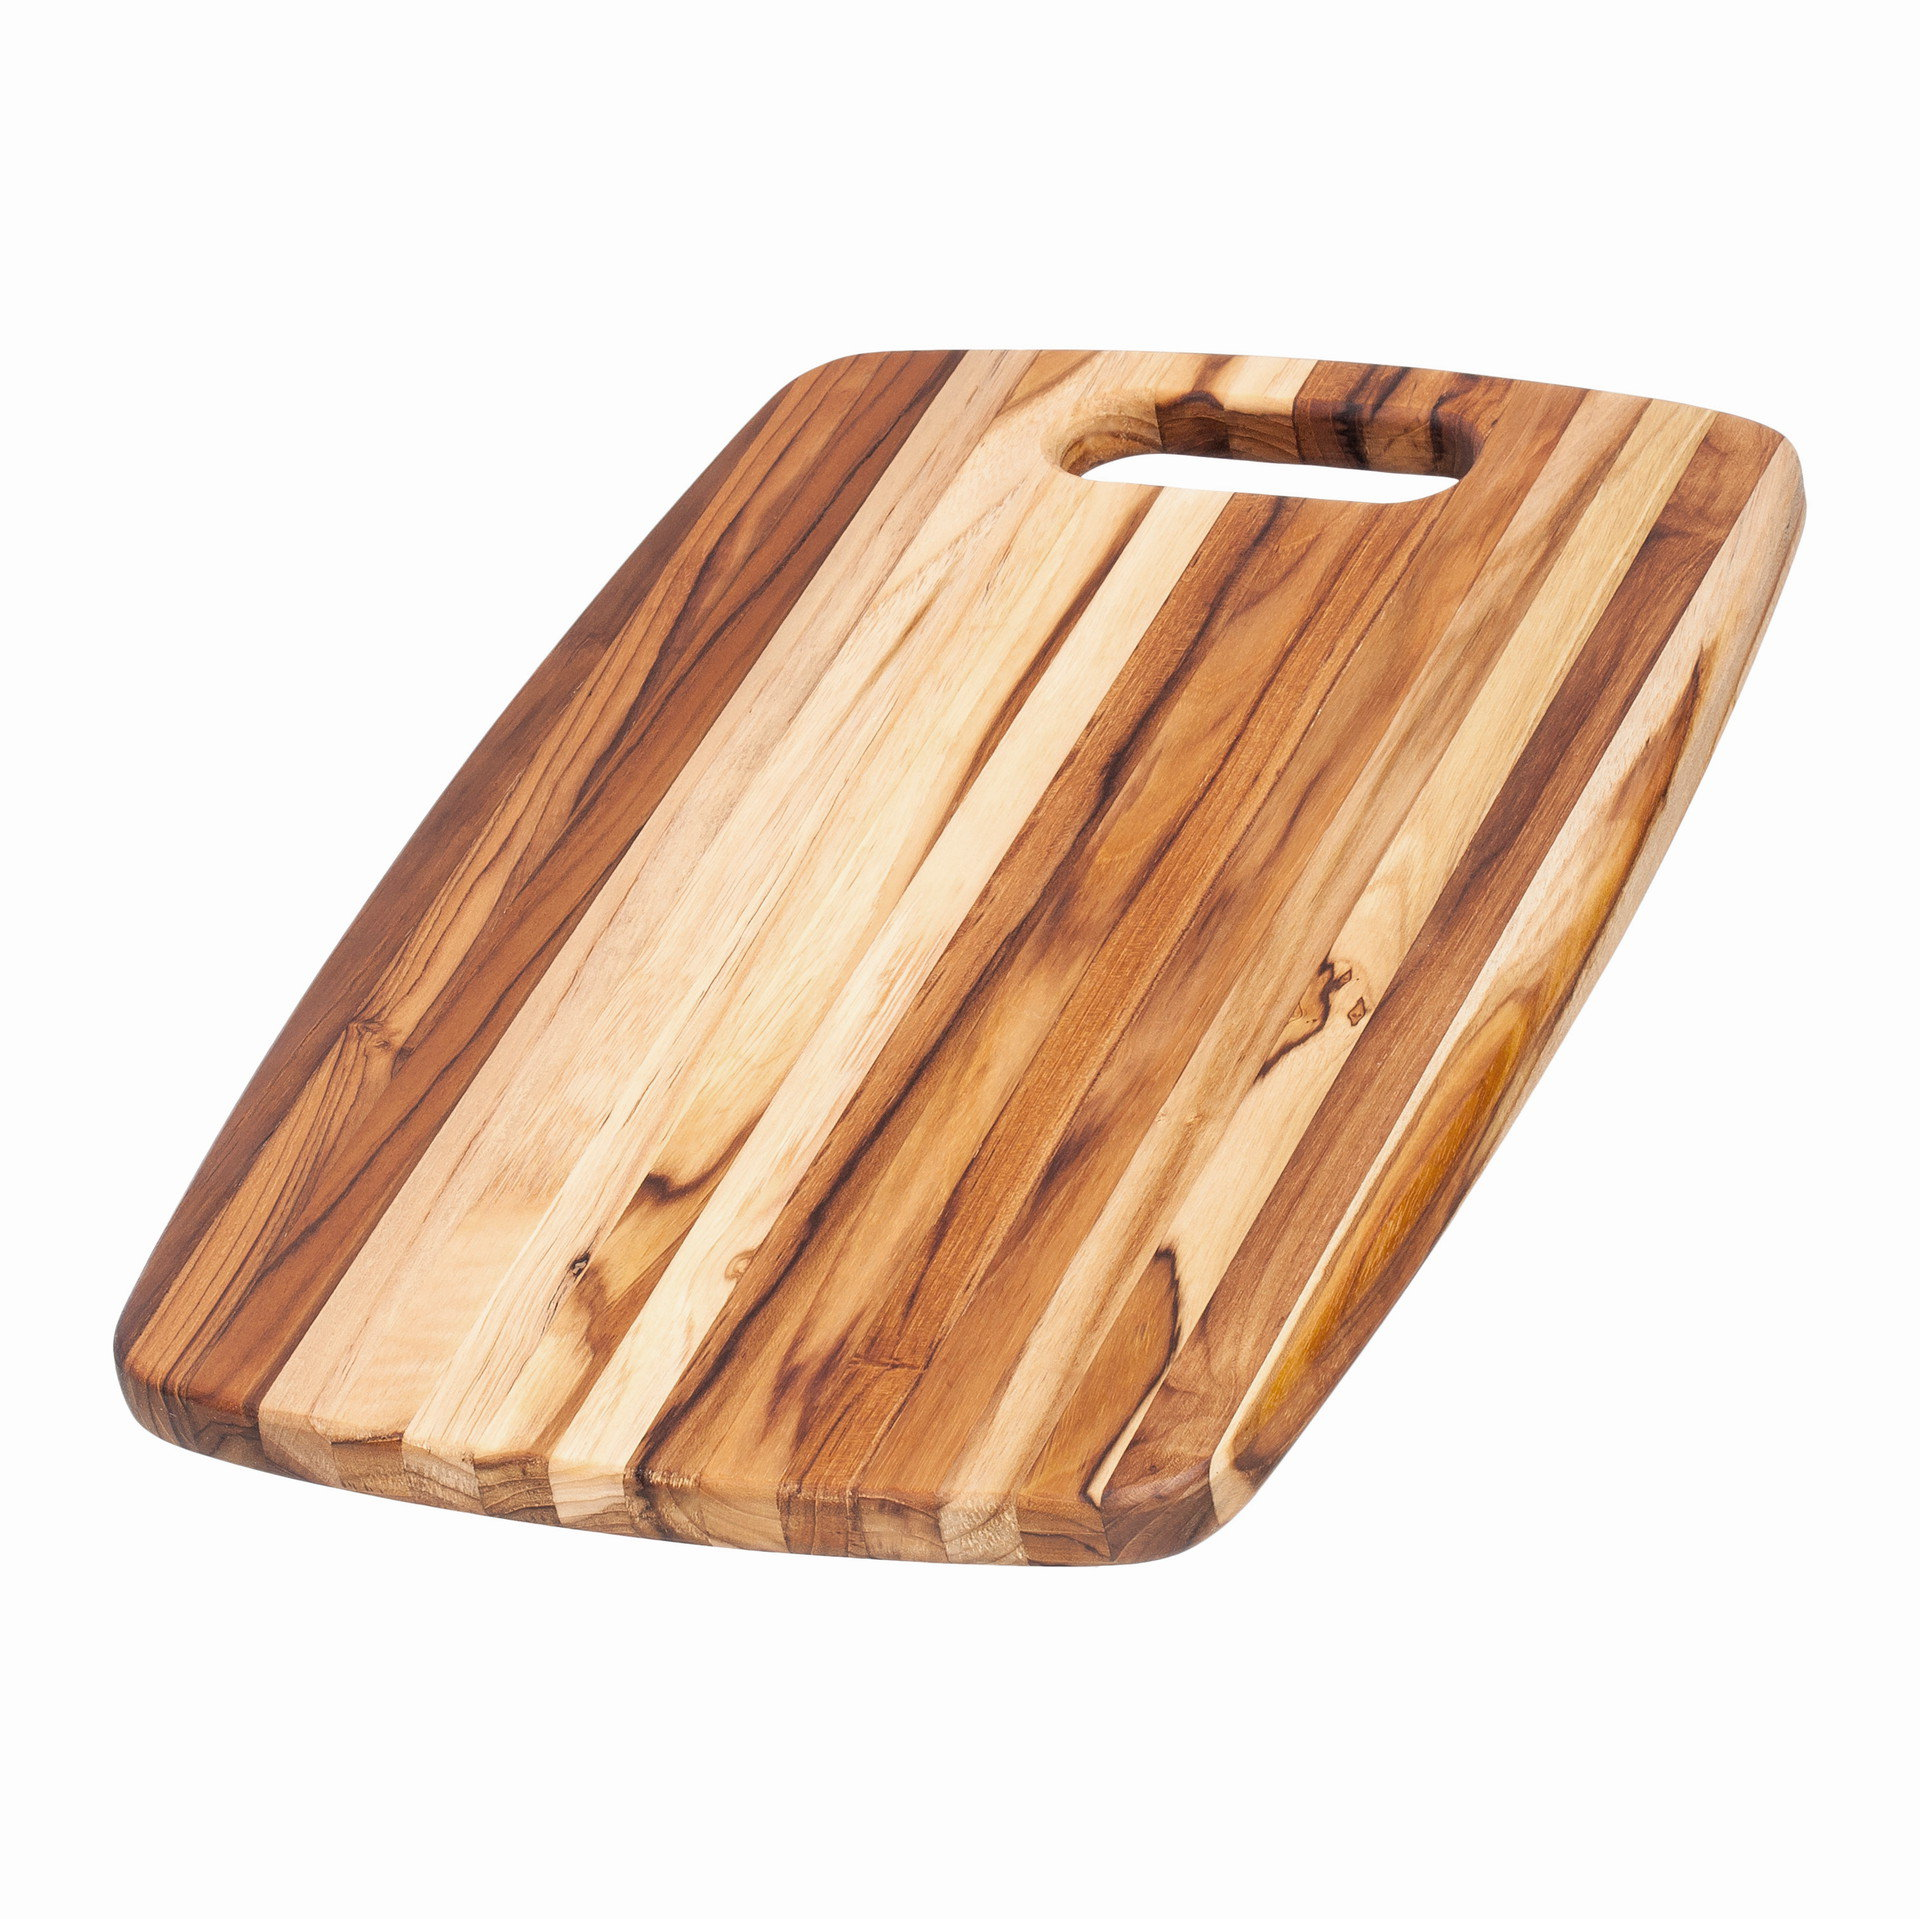 Teak Haus Edge Grain Marine Collection Boards 518 Centered Hole Handle 46x30,5x1,9